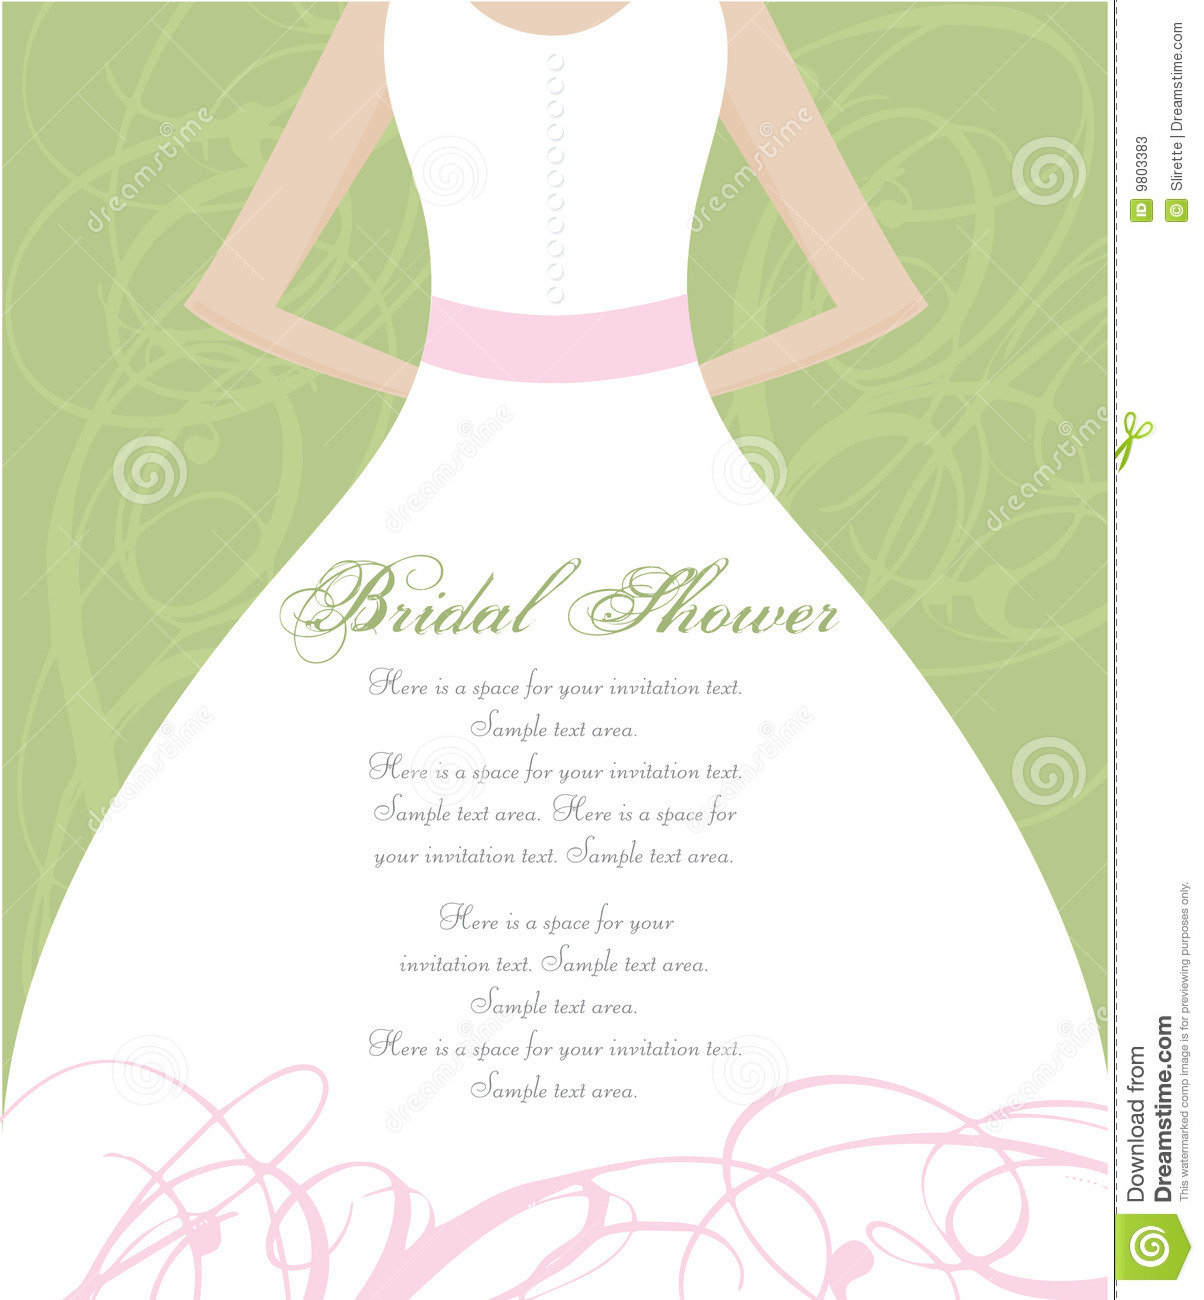 bridal shower invitations bridal shower invitation clip art free. Black Bedroom Furniture Sets. Home Design Ideas